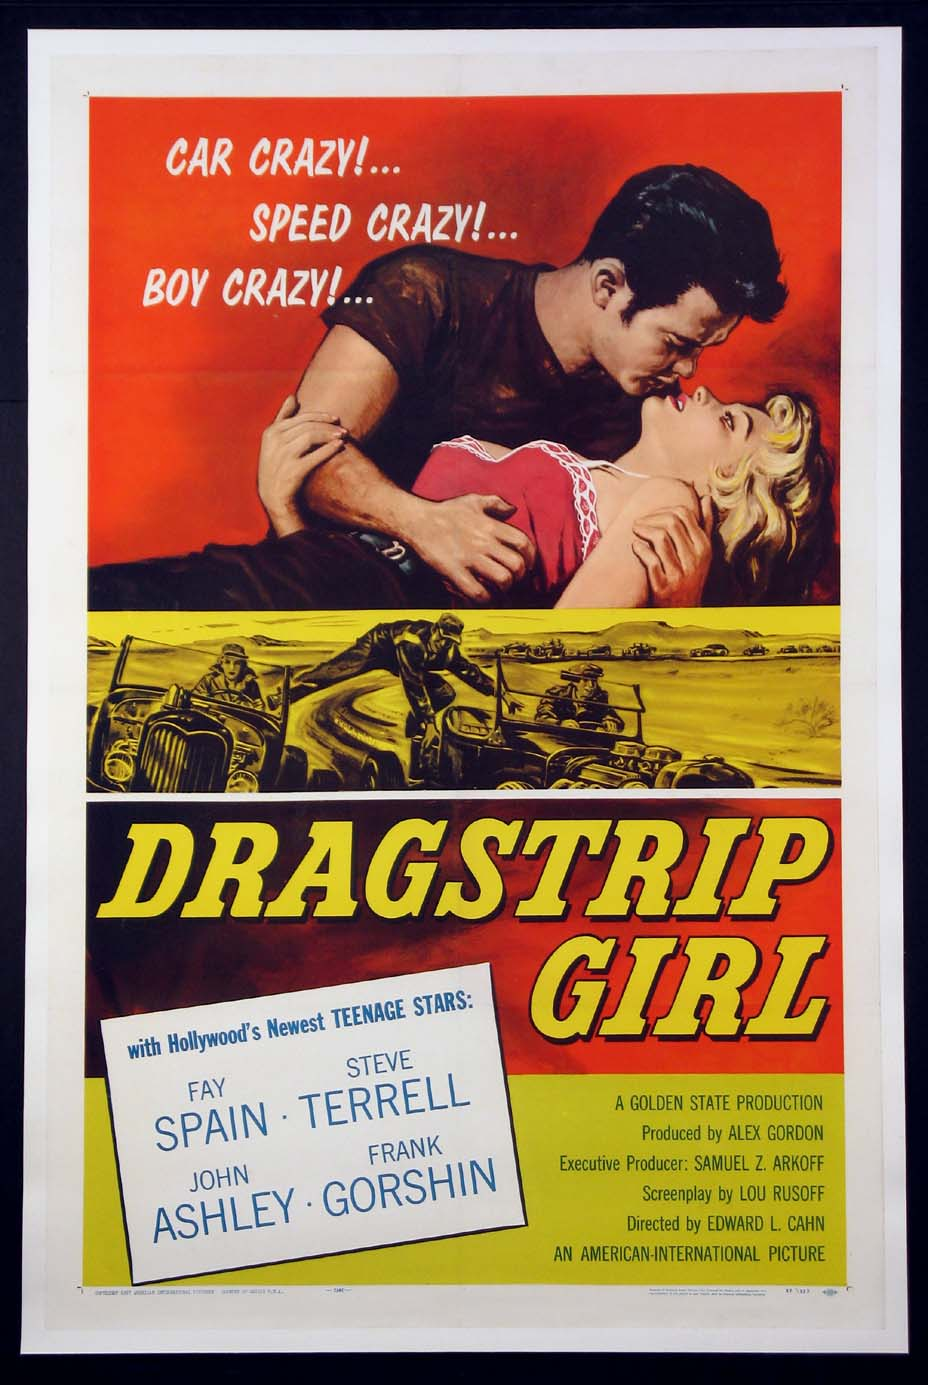 DRAGSTRIP GIRL @ FilmPosters.com